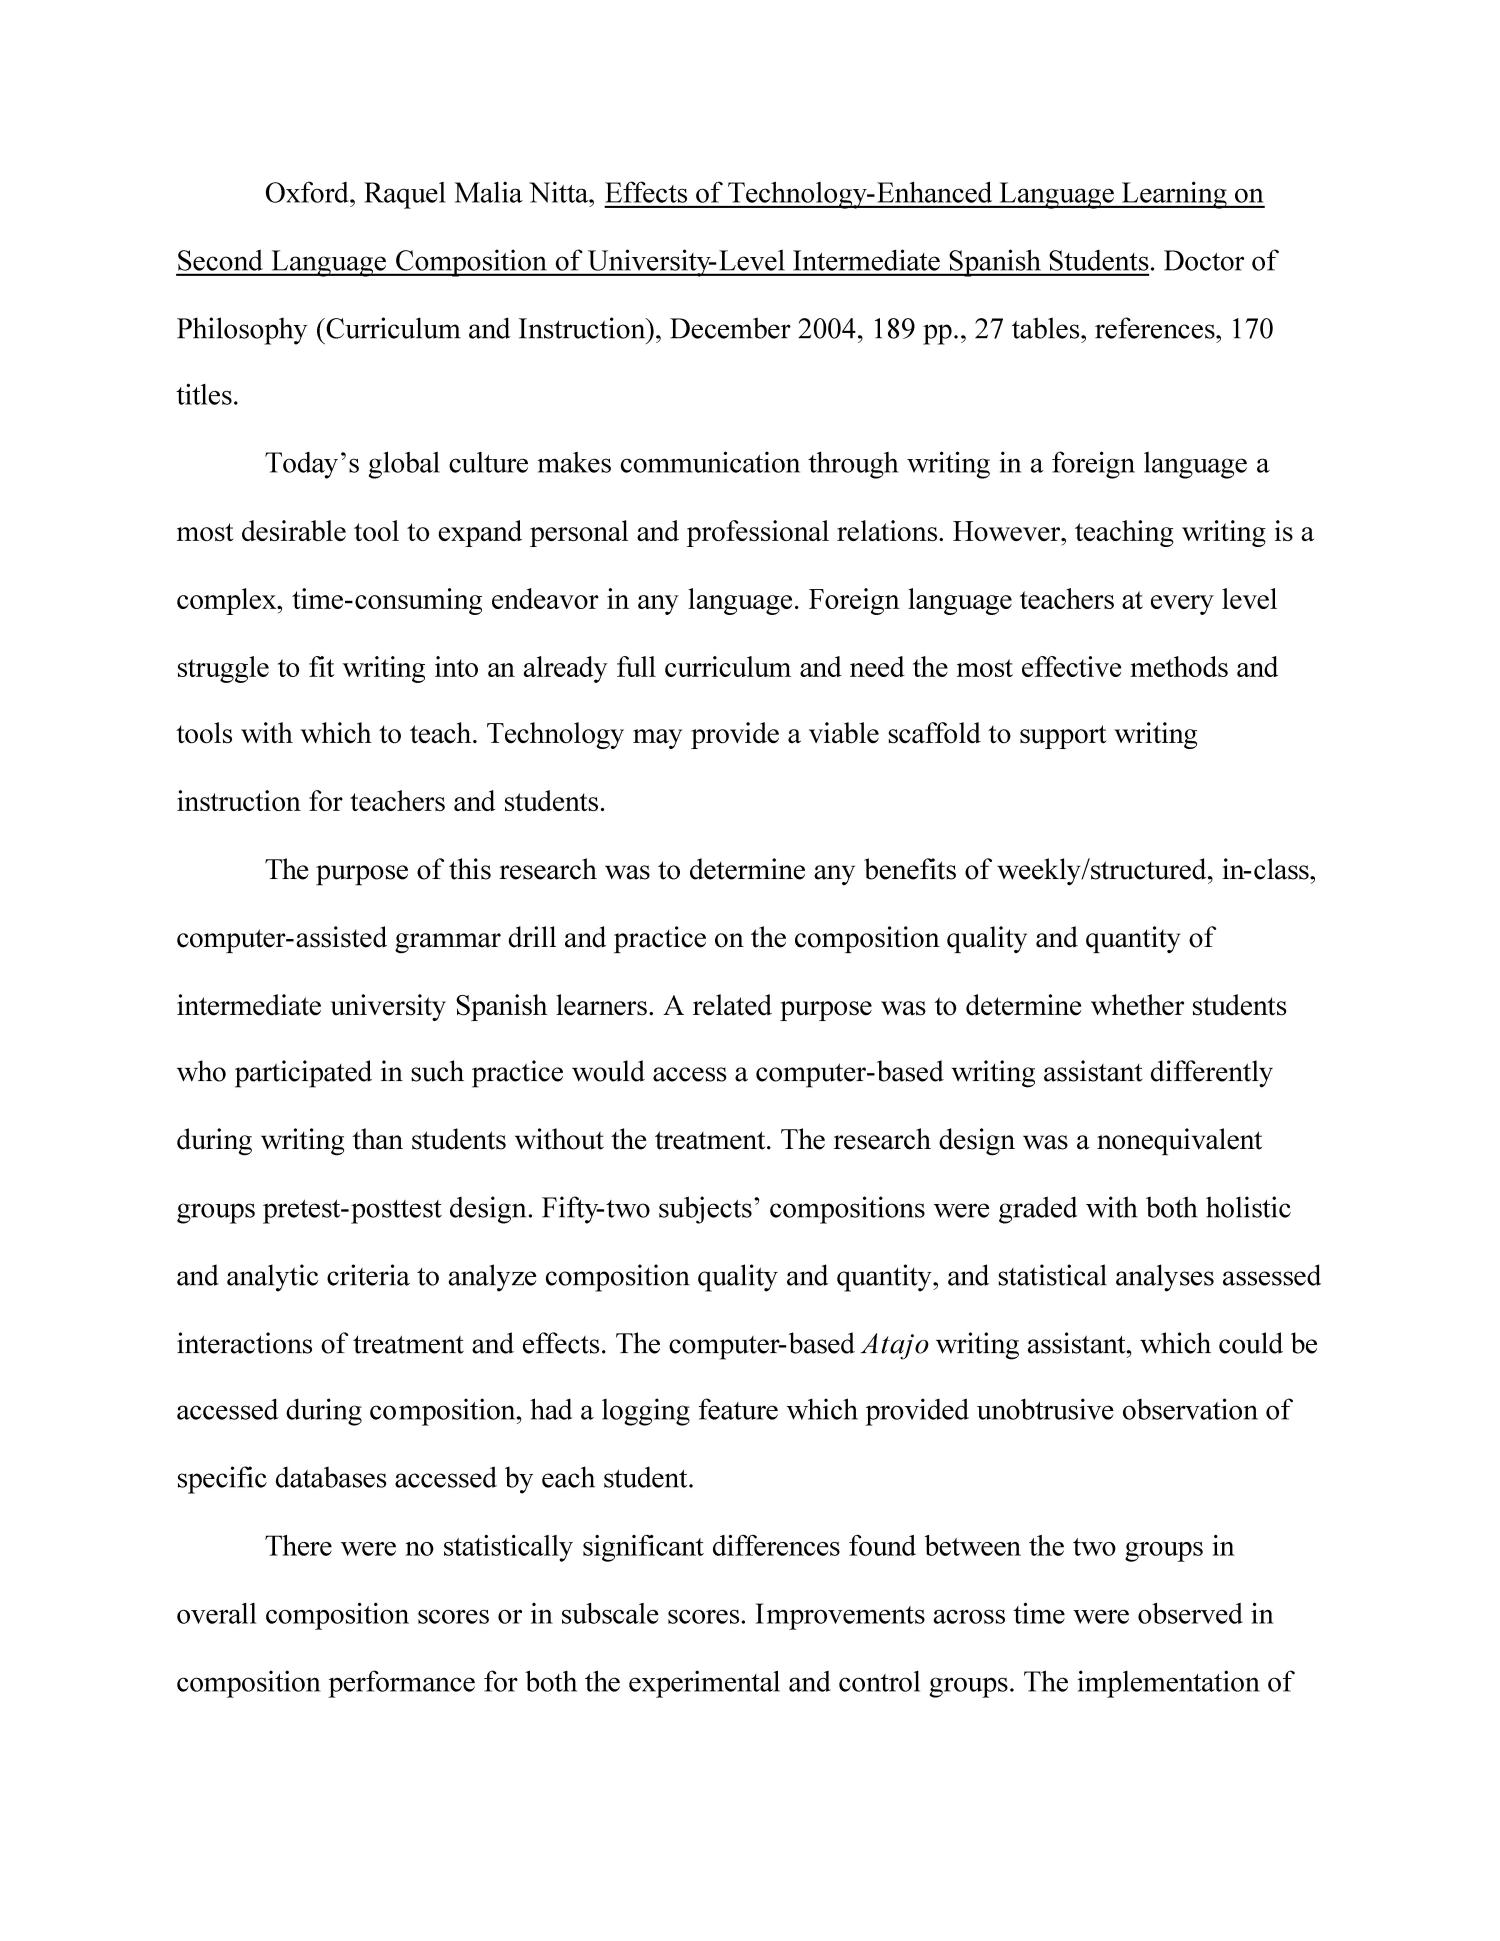 Effects of Technology-Enhanced Language Learning on Second Language Composition of University-Level Intermediate Spanish Students                                                                                                      None